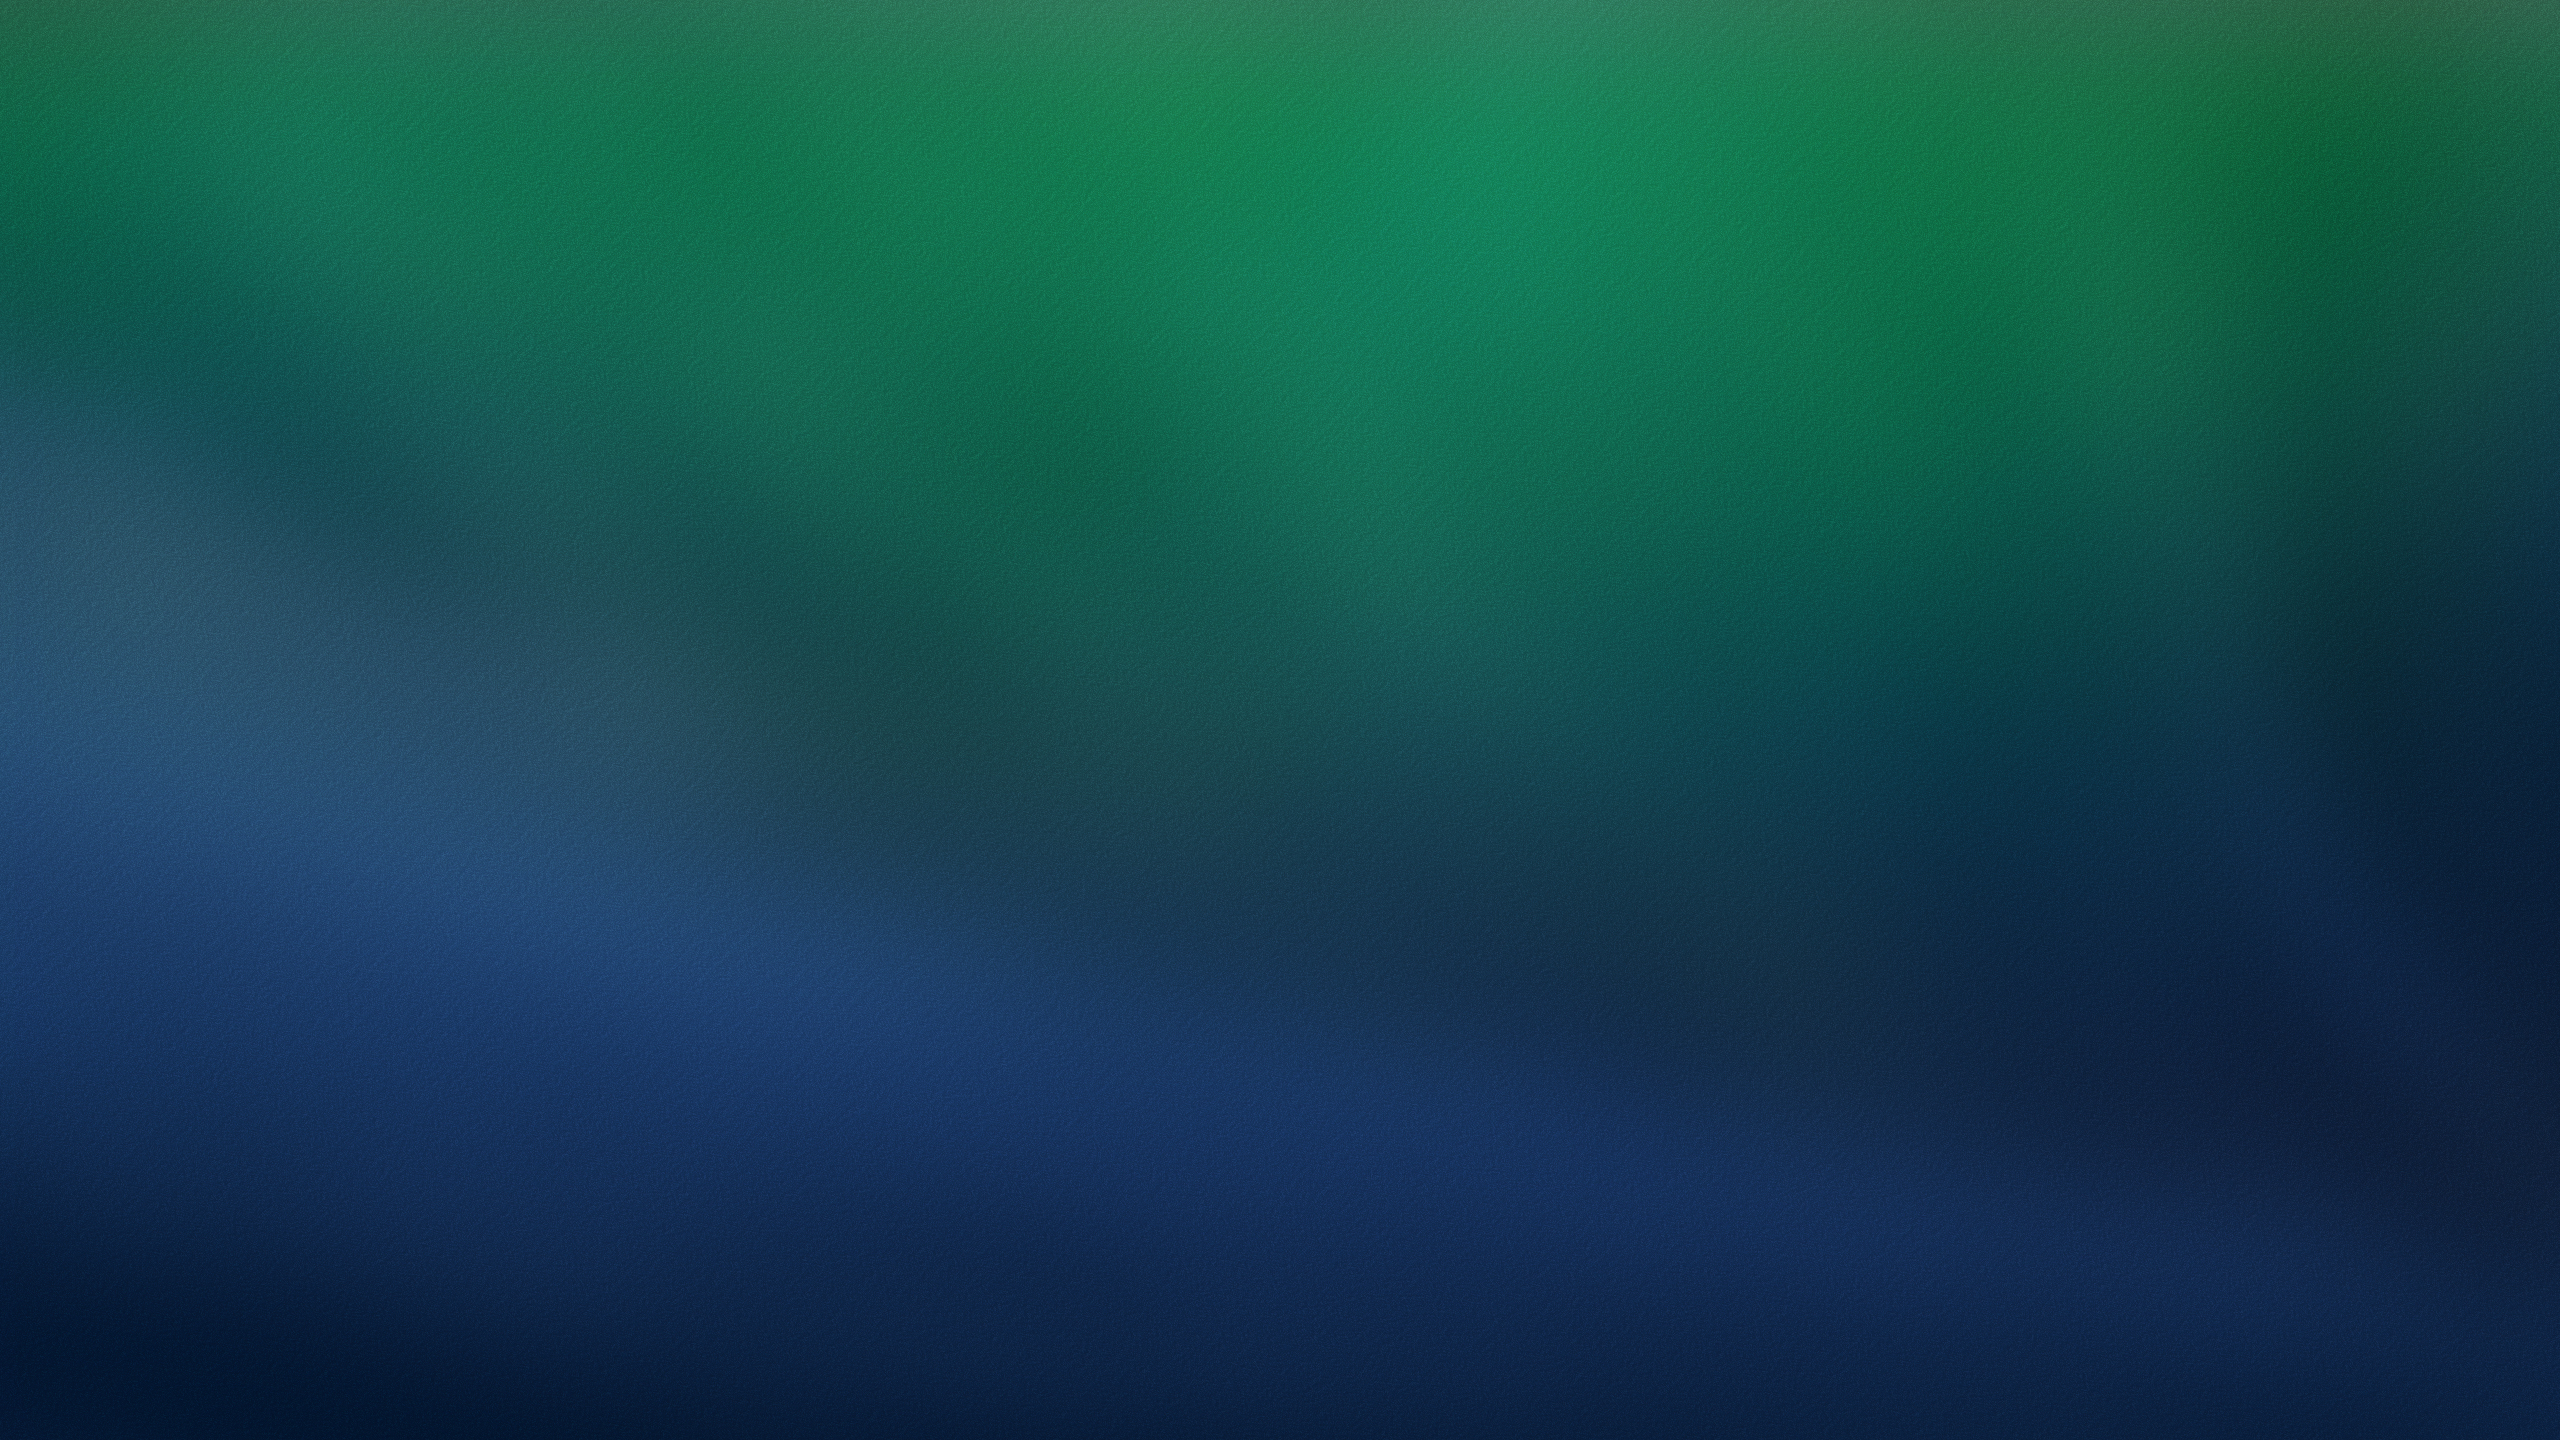 mavericks wallpapers #24